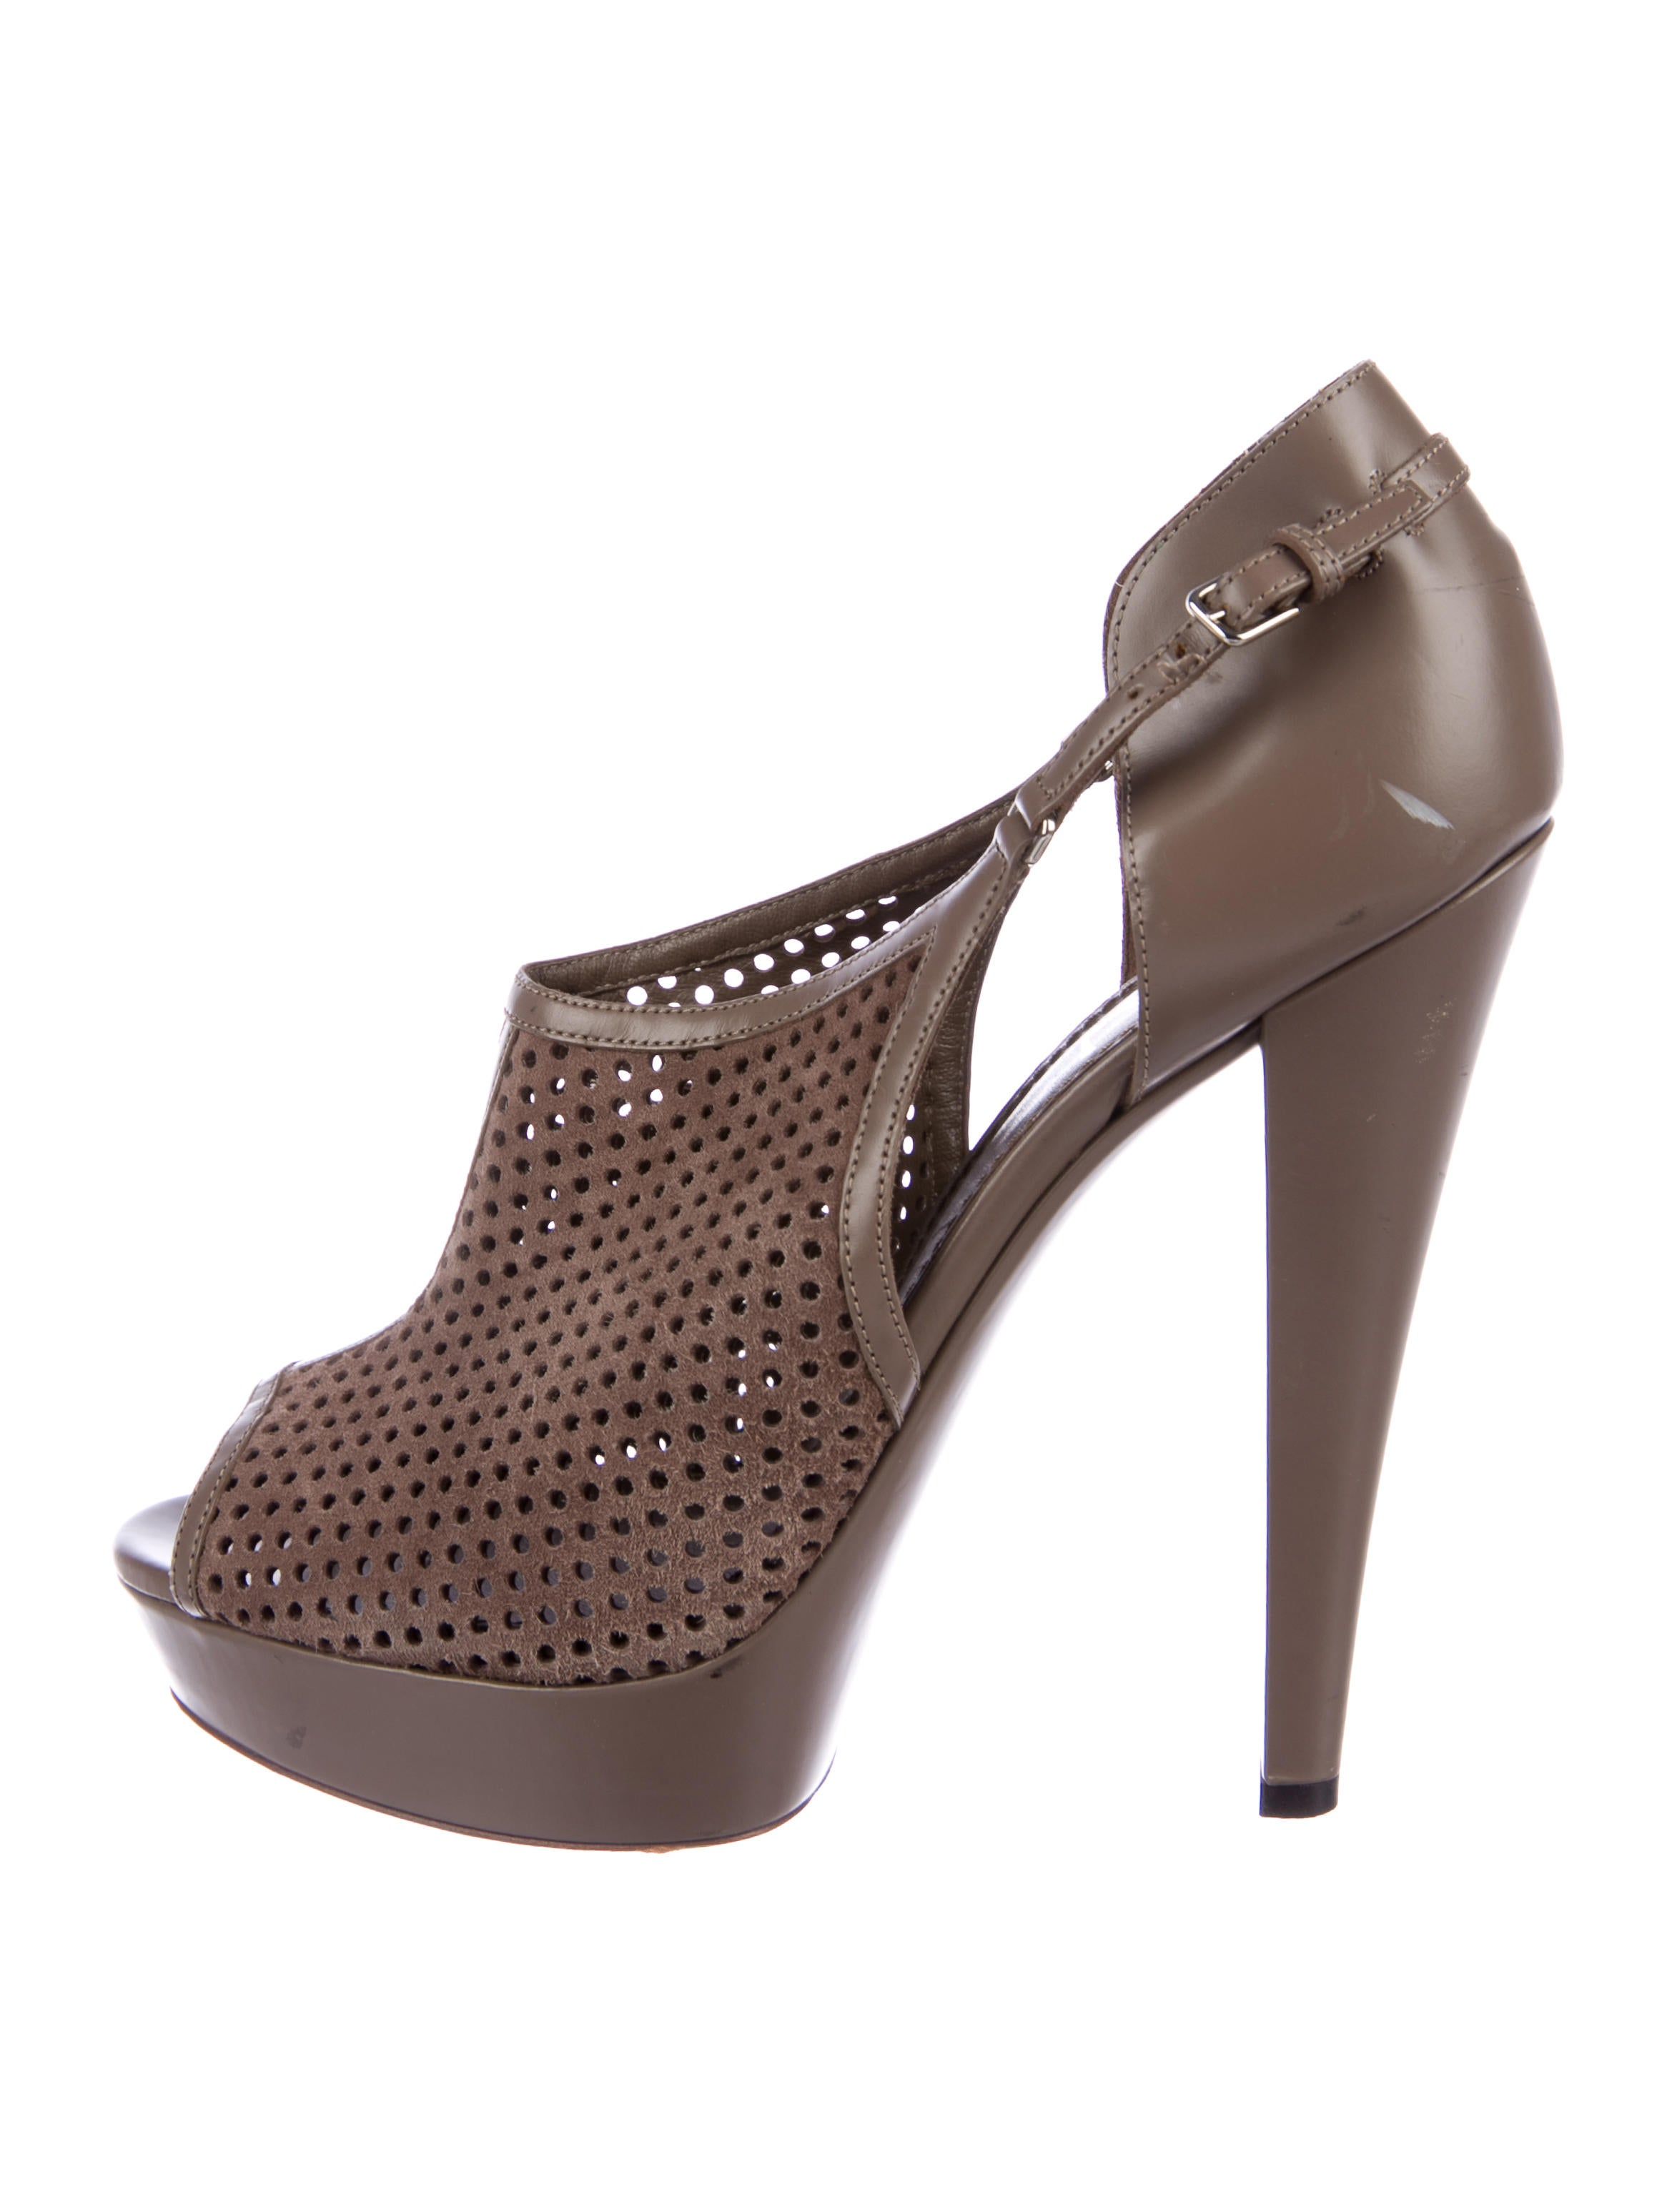 buy cheap low shipping Yves Saint Laurent Perforated Peep-Toe Booties cheap prices reliable cheap 2015 new free shipping wiki OZVHX